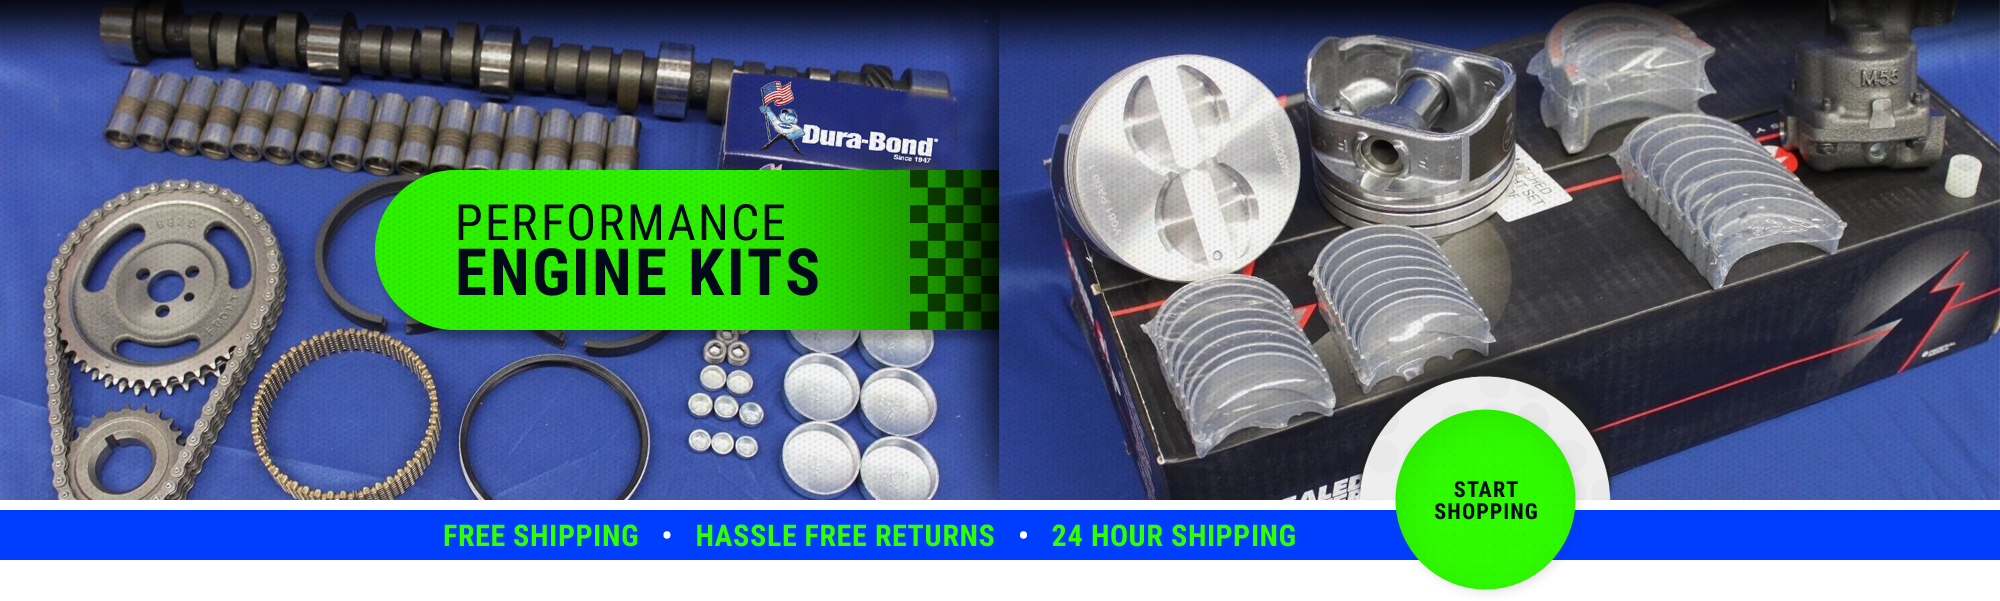 Performance Engine Kits - Start shopping - FREE SHIPPING - HASSLE FREE RETURNS - 24 HOUR SHIPPING